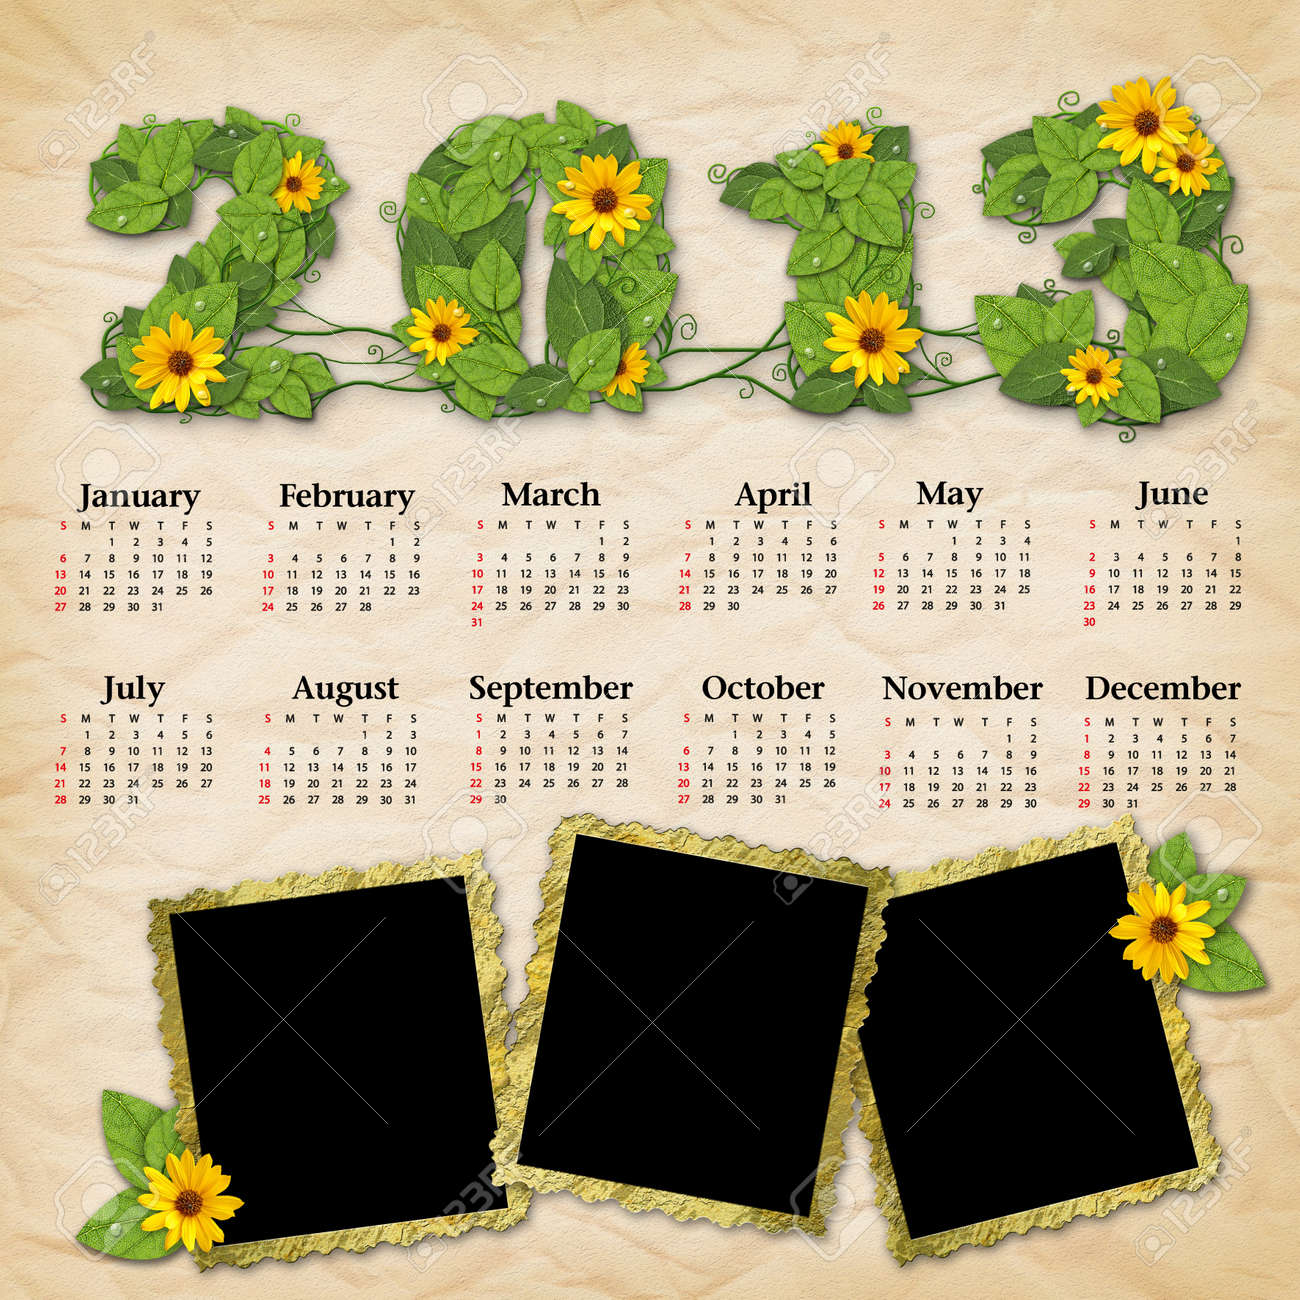 Vintage calendar 2013 with a template for picture edges Stock Photo - 16098030